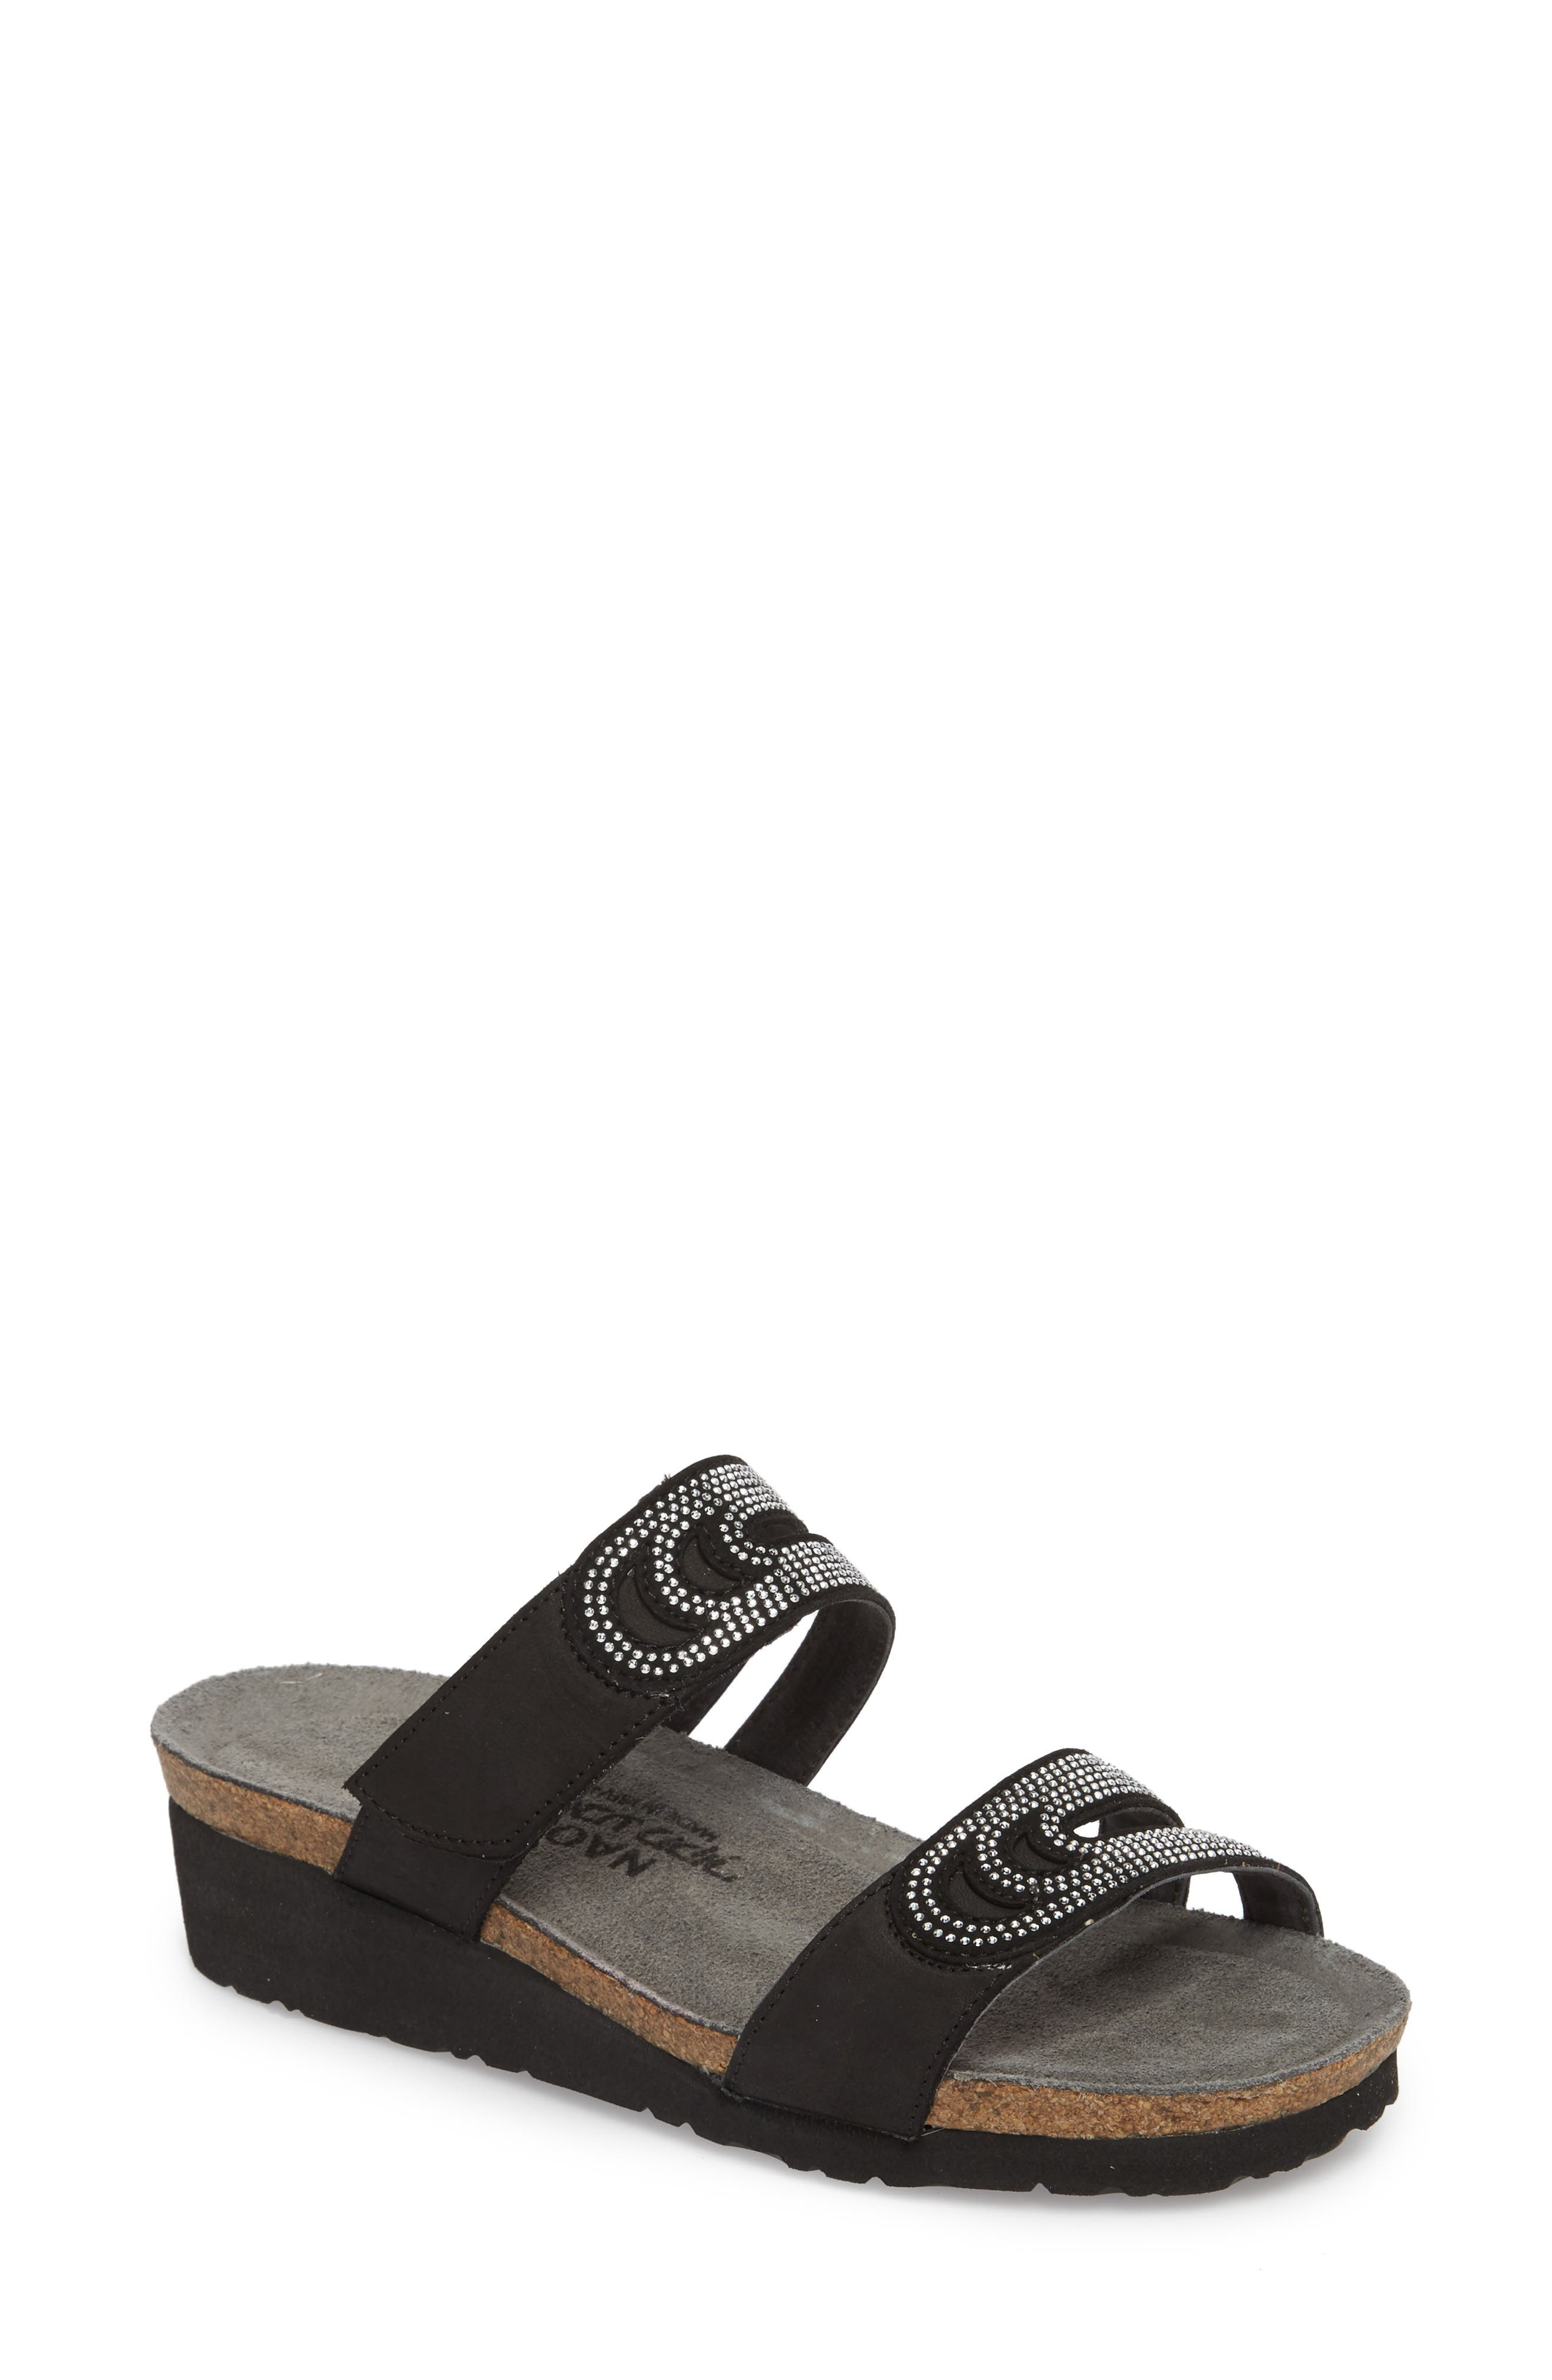 NAOT Ainsley Studded Slide Sandal, Main, color, BLACK NUBUCK